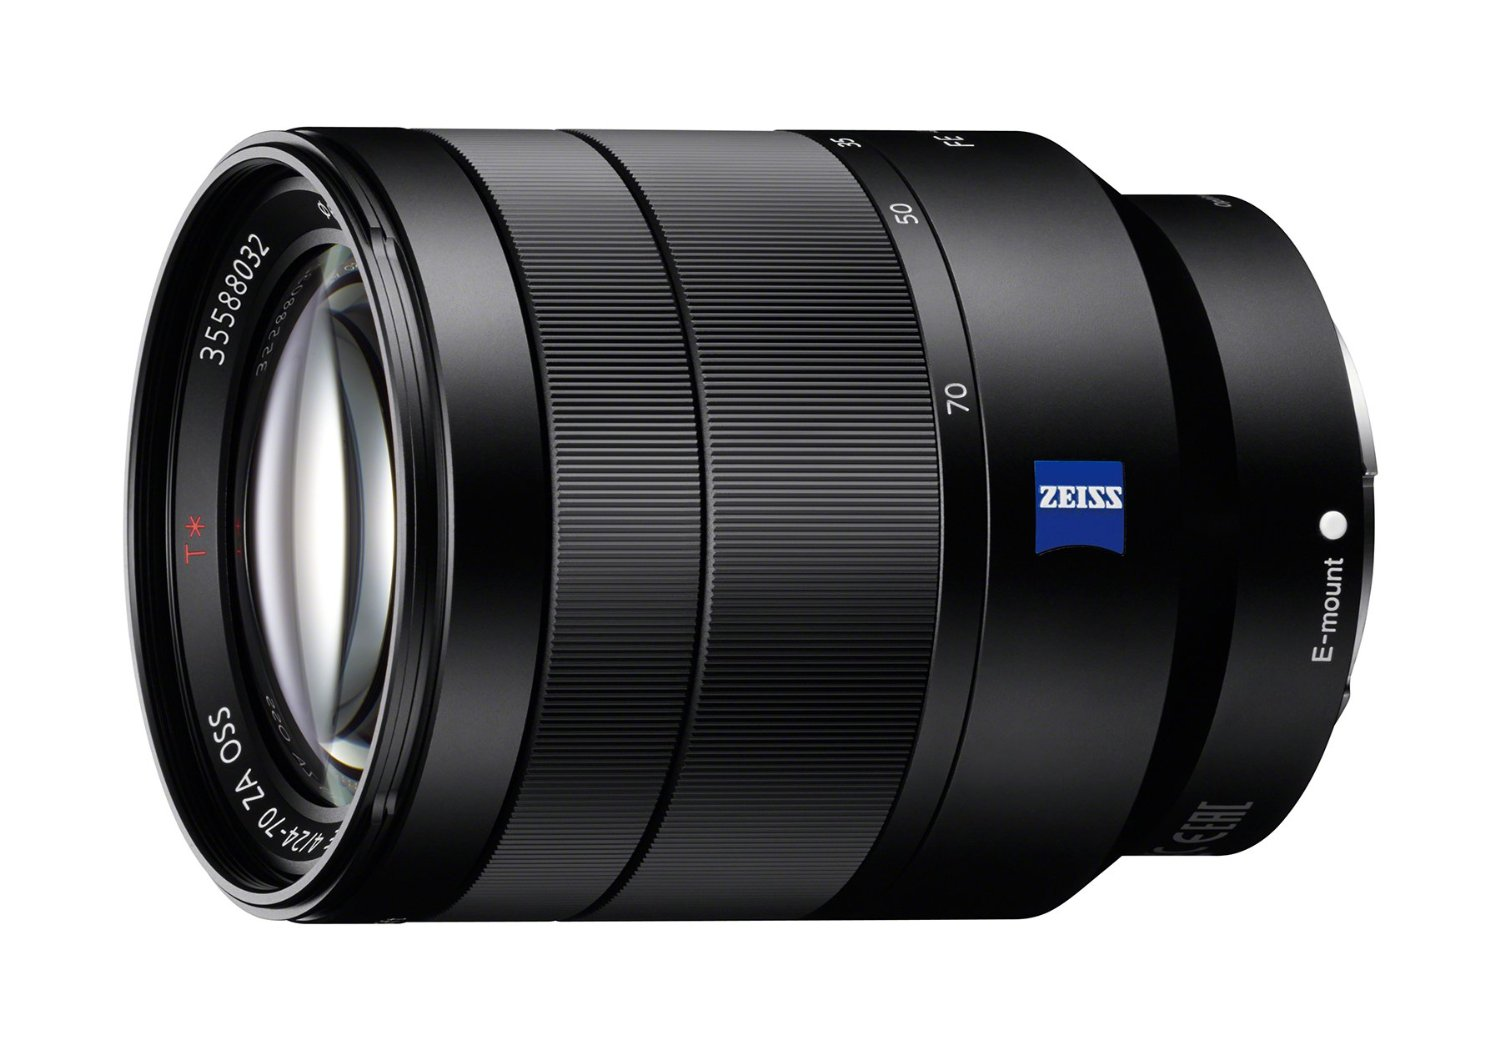 Copy of Sony 24-70mm f/4